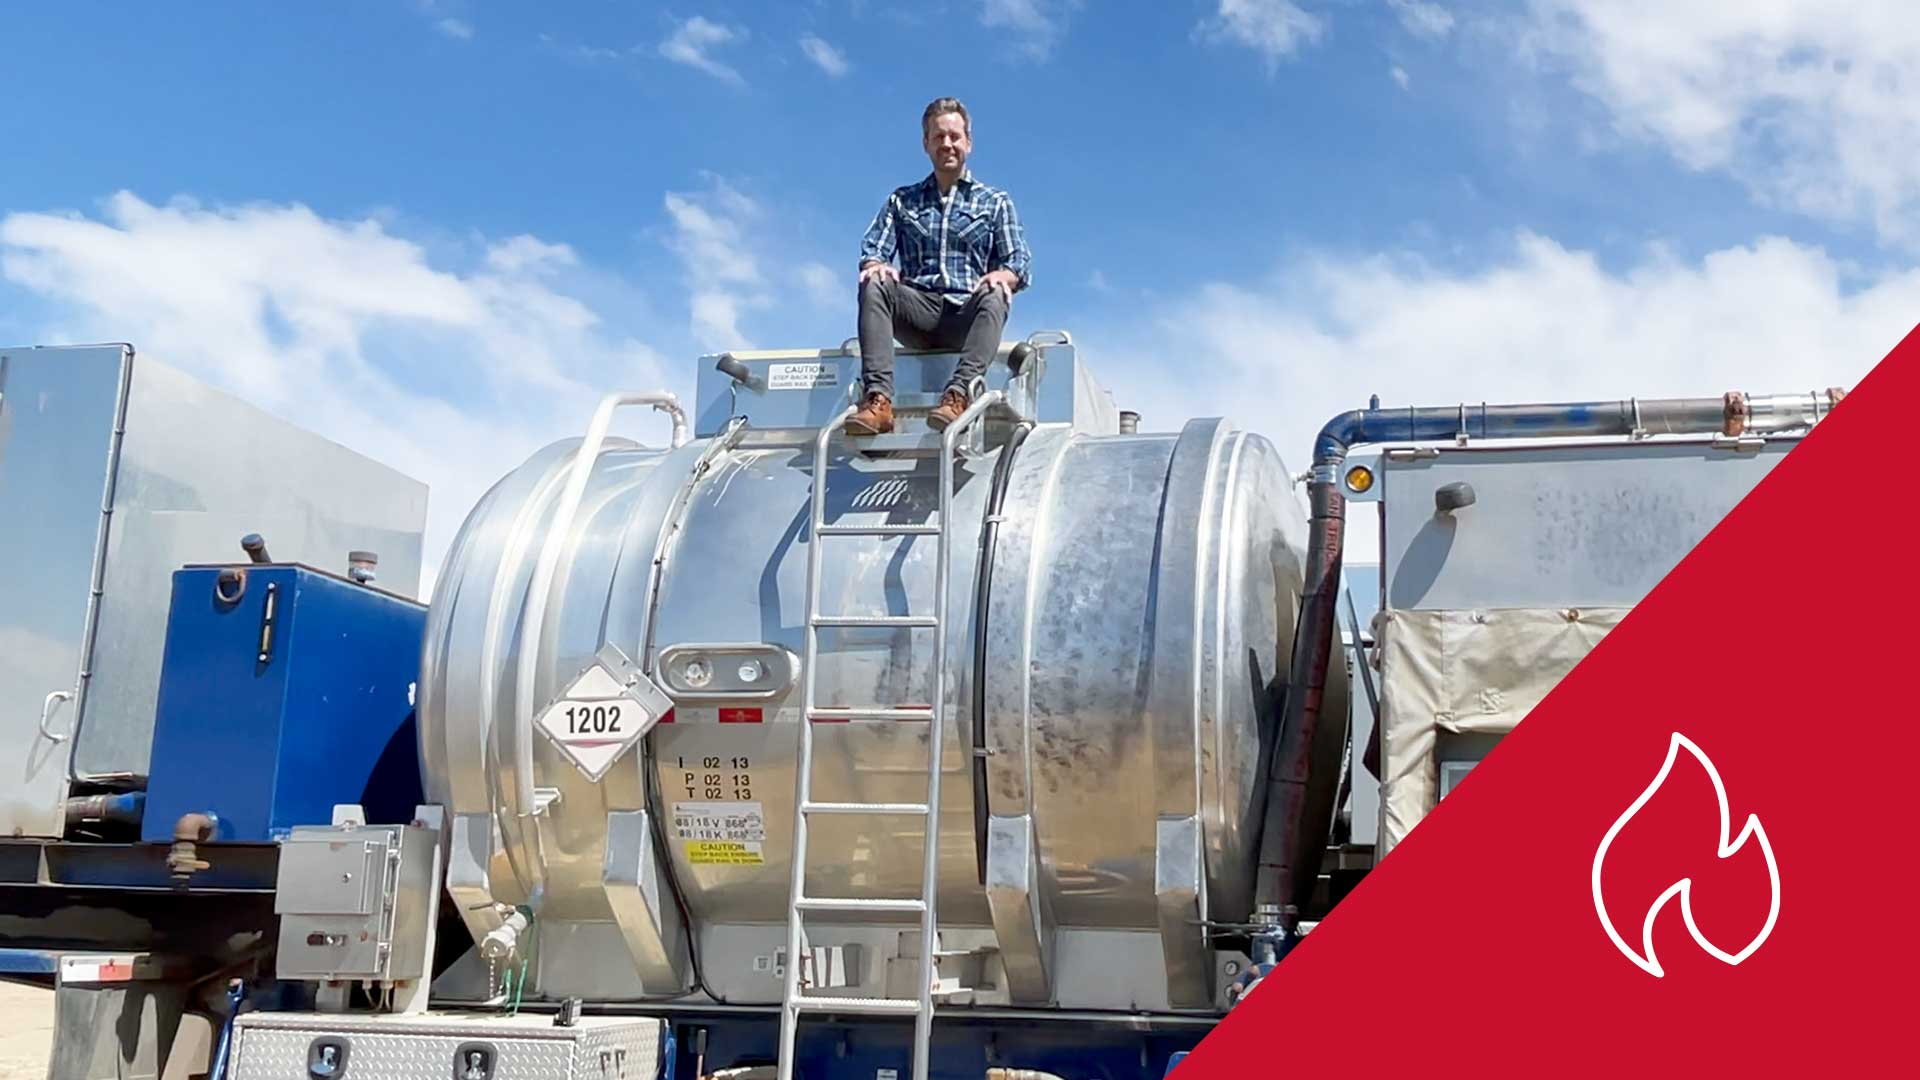 Just Listed! Three New & Slightly-used Surplus 38 MMBTU Fracking / Frac Water Heater Trailers for Sale in Alberta Canada